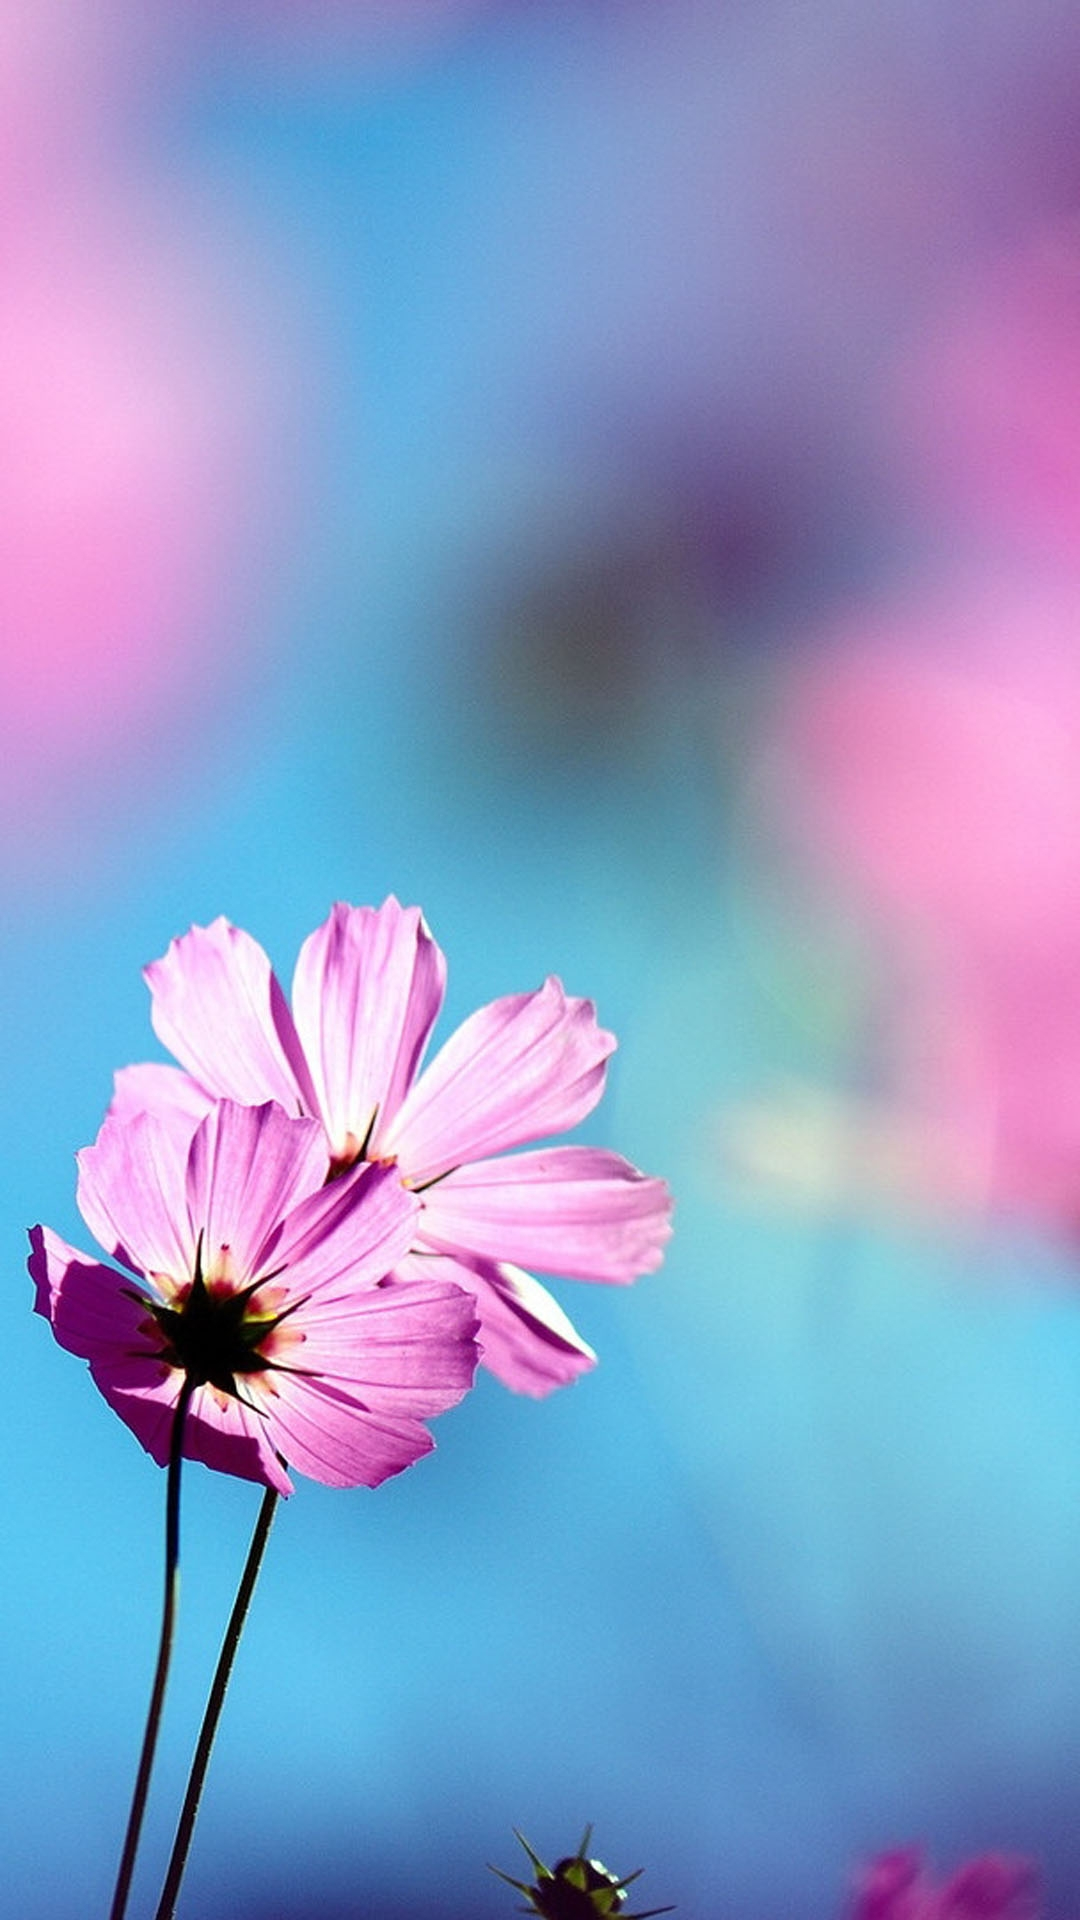 Flowers Wallpaper flowers phone wallpapers download pink ...